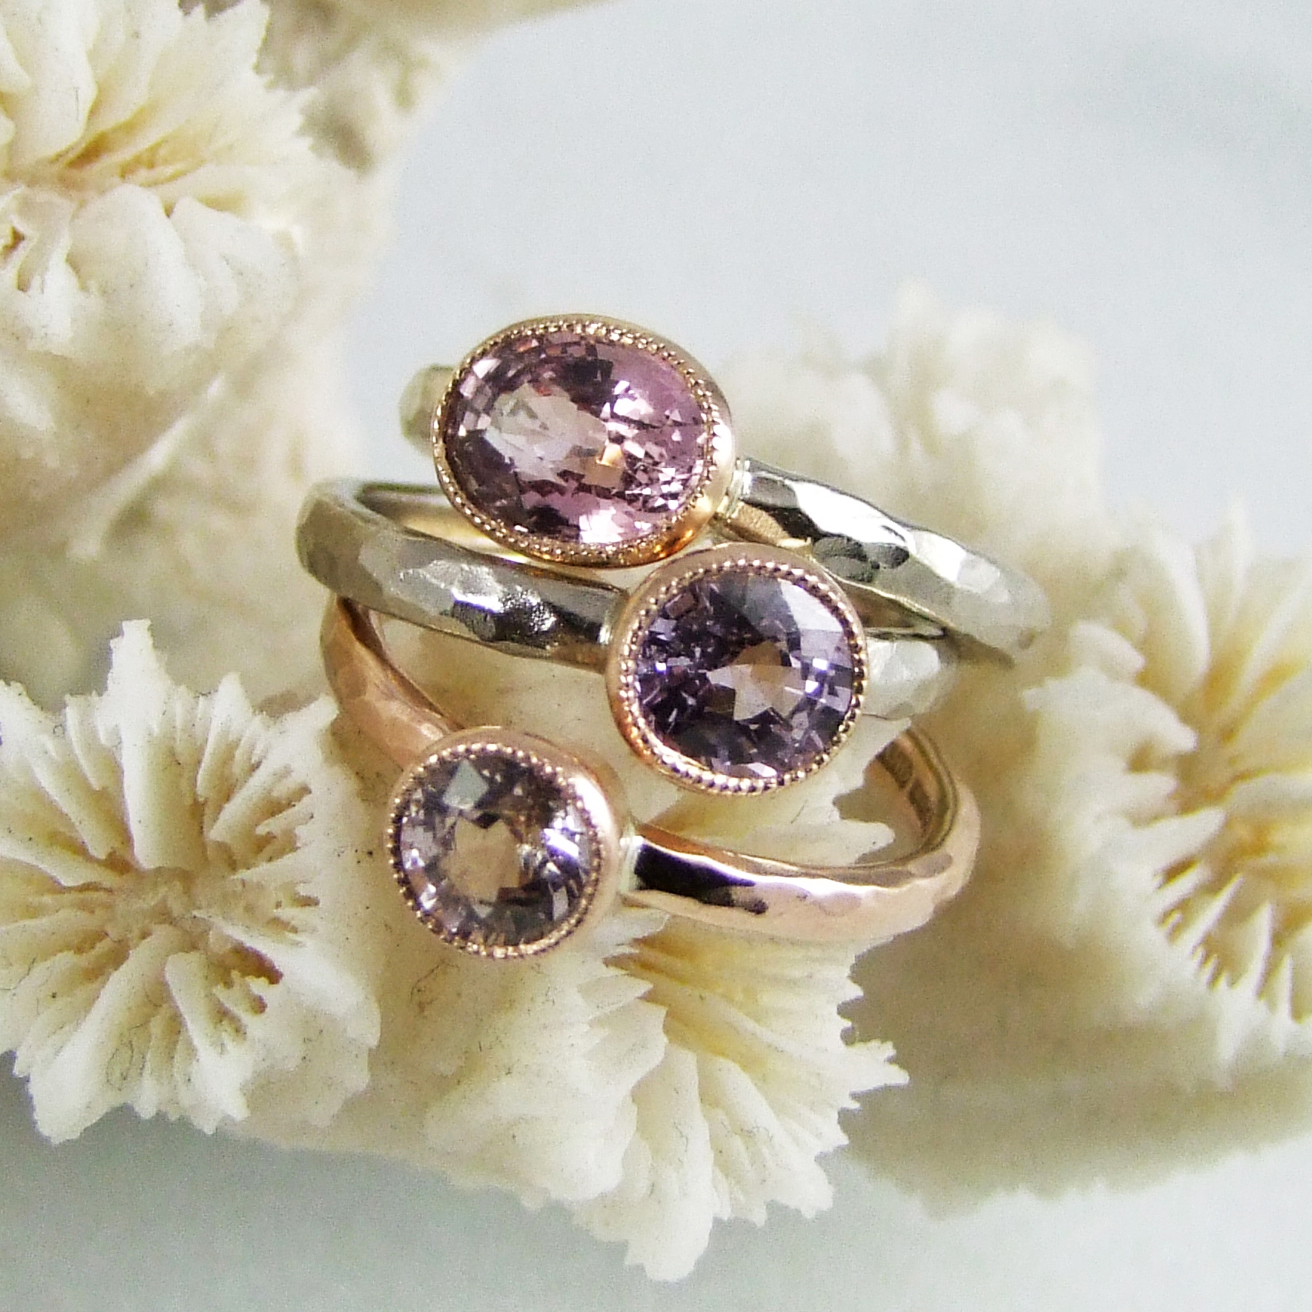 pink tone ring branch modern princess size white gold of rose diamond asscher round cut sapphire rings emerald two settings fullxfull shaped design stone full large own leaf simple styles engagement popular halo and cushion your platinum pear cluster solitaire